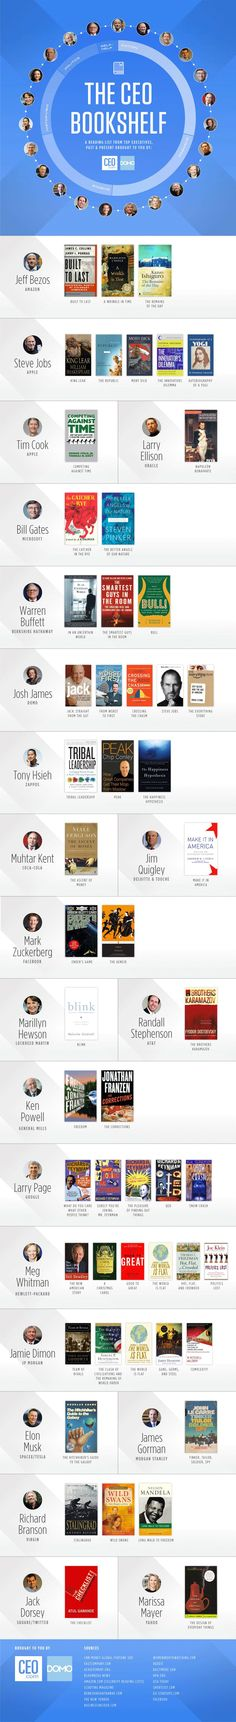 """""""The CEO Bookshelf"""" is the infographic created by Domo and CEO.com. It lists books that influenced 22 most influential CEOs in the world, past and present.…"""